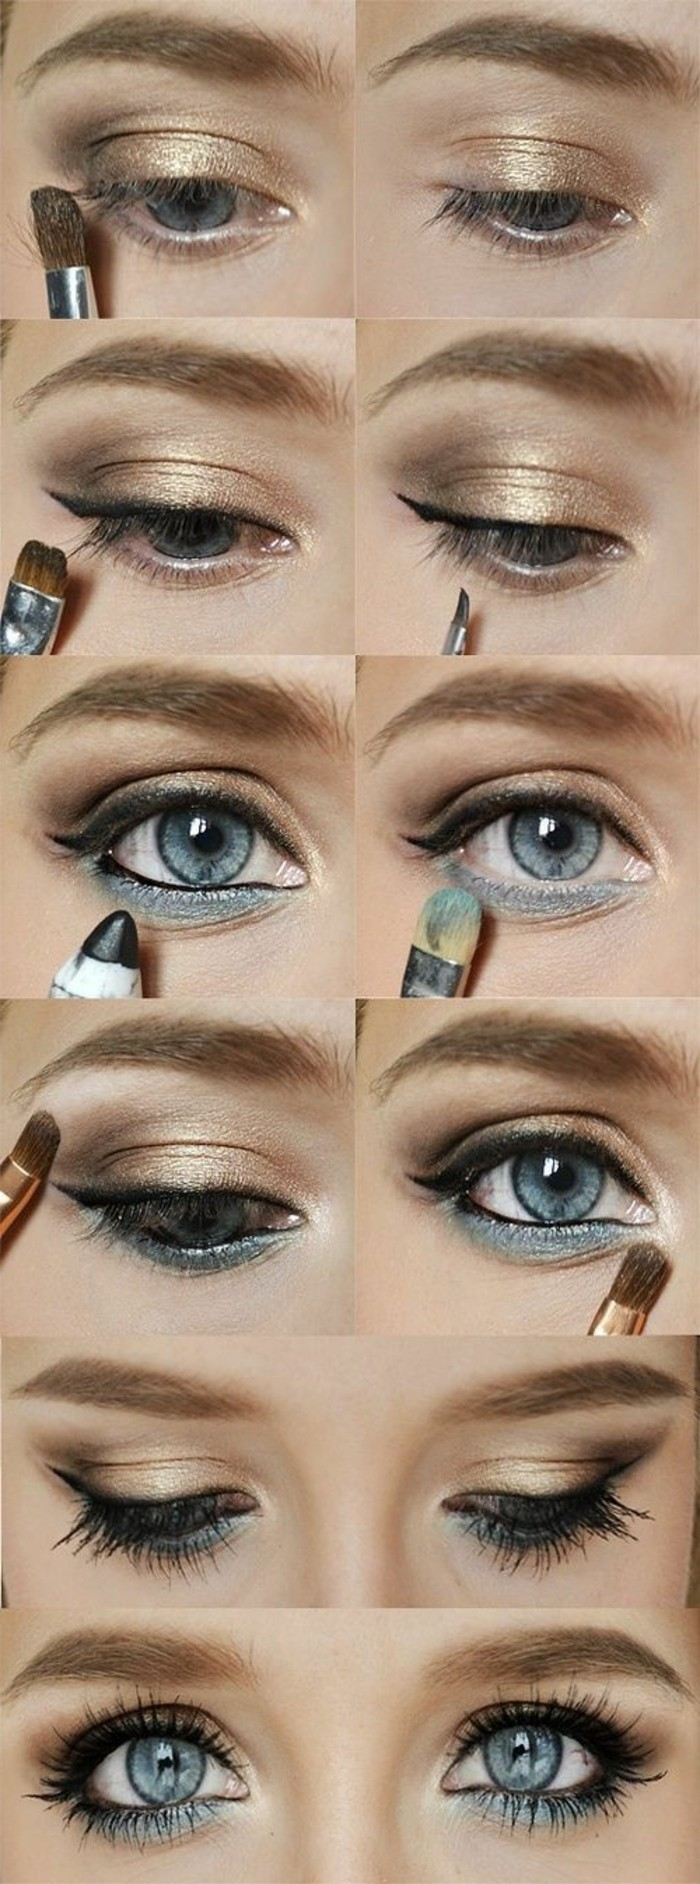 maquillage-chat-femme-tuto-maquillage-cat-eye-tutoriels-faciles